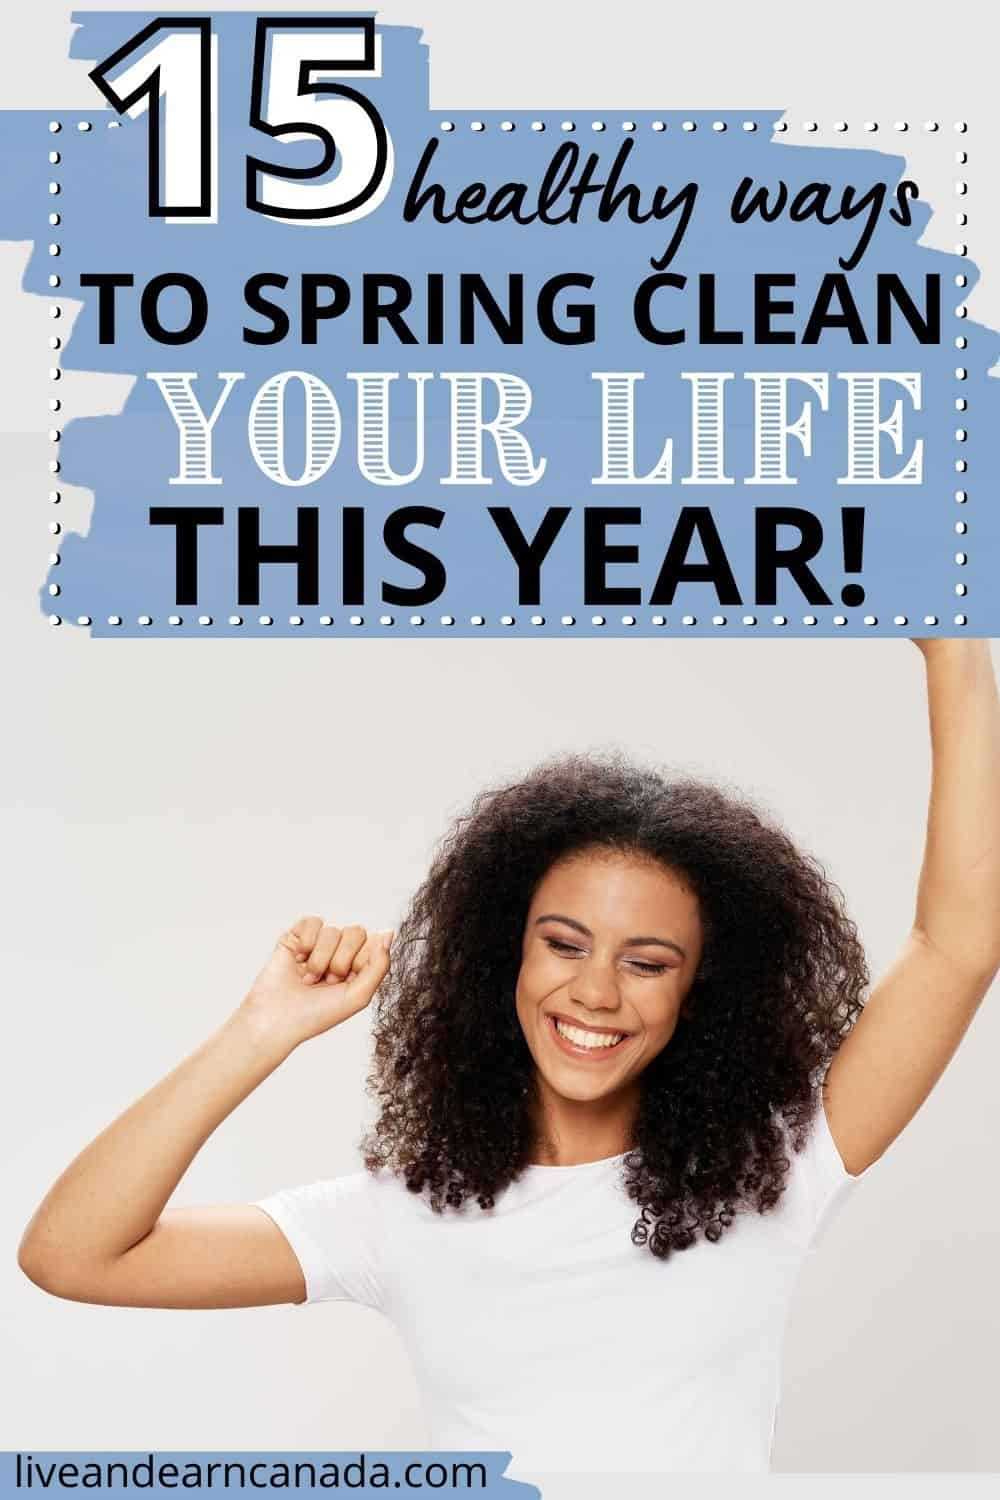 15 Healthy Ways to Spring Clean Your Life Is your life cluttered and messy? It's time to get spring cleaning. Click here to learn how to spring clean your life, from your house to your thoughts. Plus, get the FREE Spring Clean Your Mind Checklist. #SpringCleaning #SpringClean #OrganizeMyLife #Declutter #ClutterFree #Organization #Organized #Organizing #Spring #Minimal #Minimalism #Minimalist #PositiveLife #Mindful #MindfulLiving #Positive #PositiveVibes #Positivity #MentalHealth #MillennialBlogger